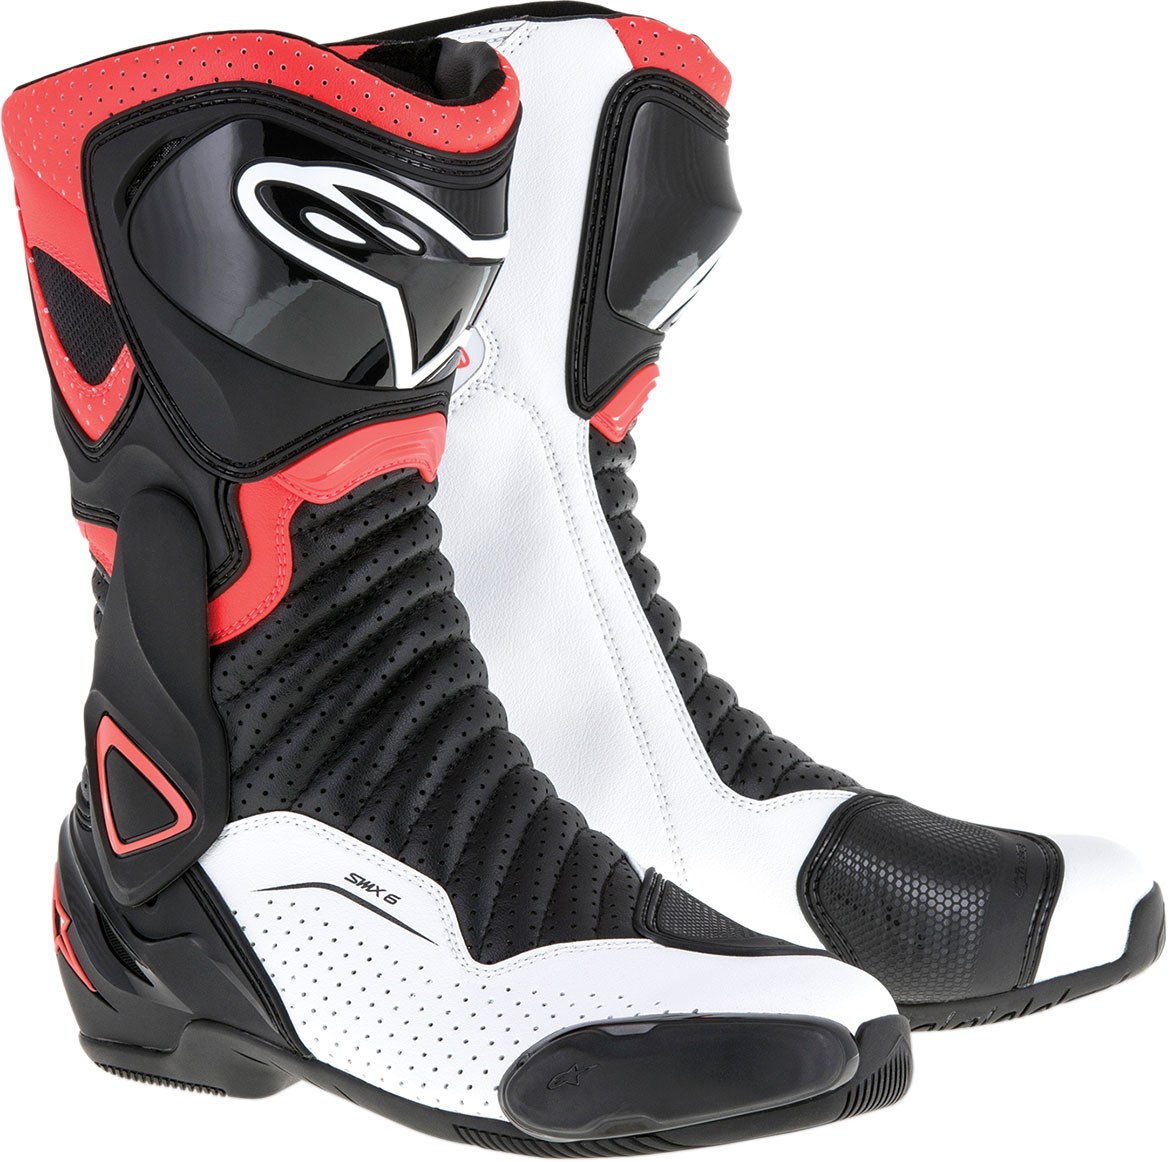 Alpinestars SMX-6 V2 Vented Road/Track Motorcycle Boots (Black Red White)